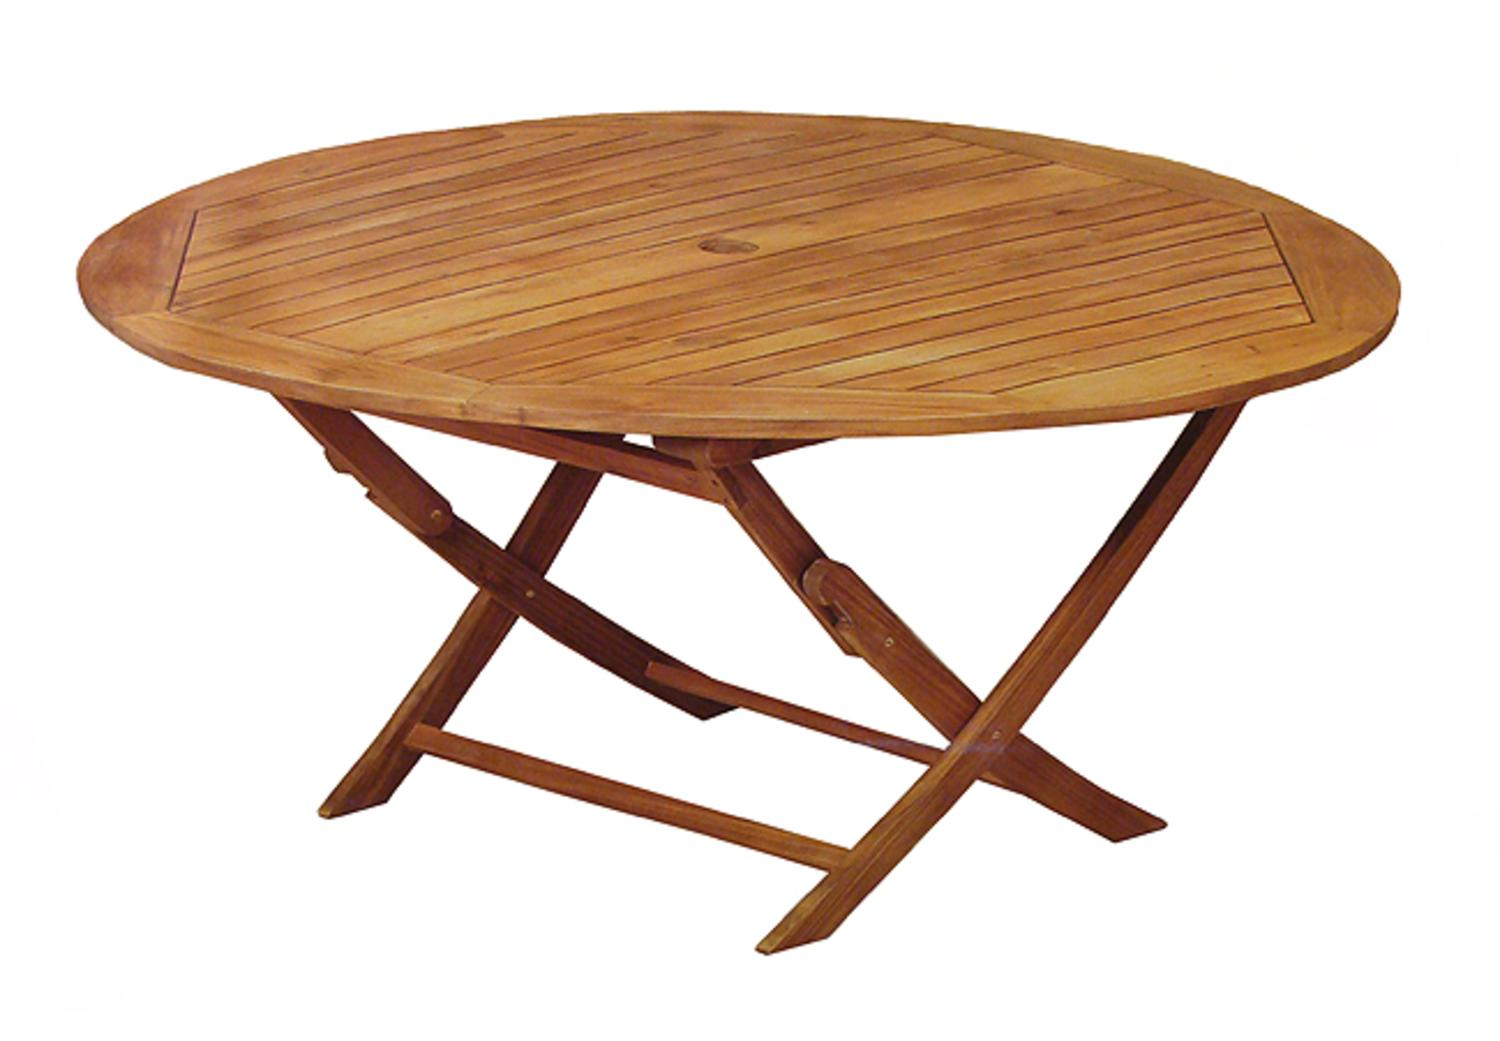 47 round outdoor acacia wood folding patio dining table